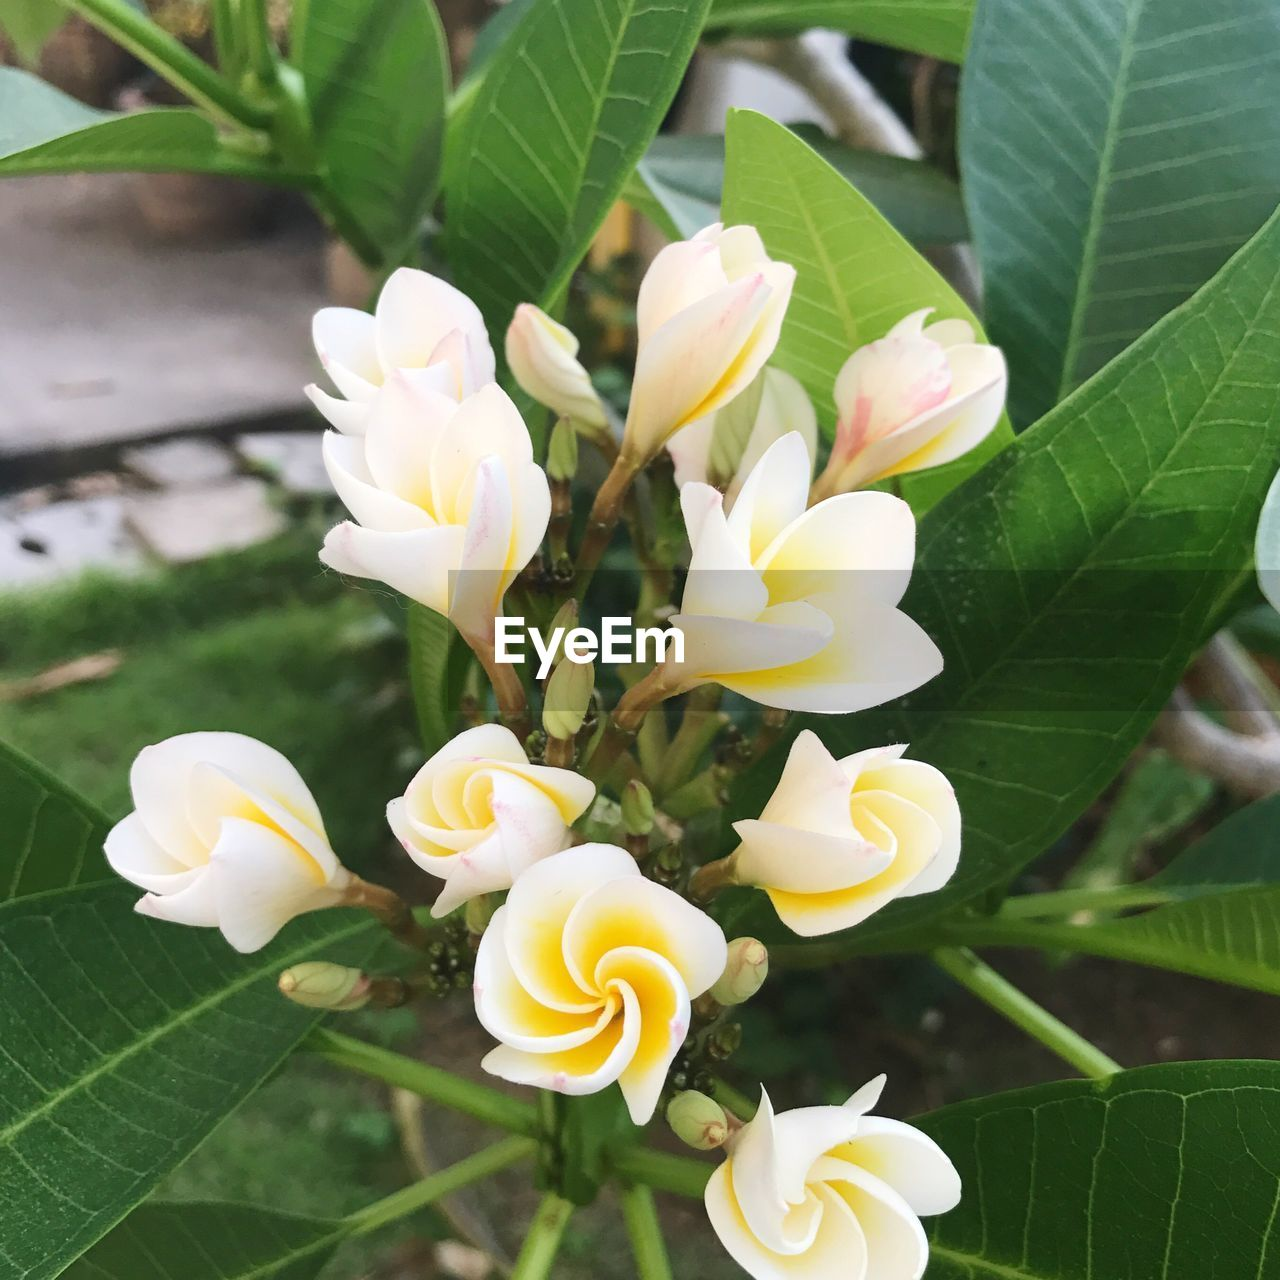 leaf, flower, green color, freshness, growth, plant, day, beauty in nature, fragility, nature, no people, petal, outdoors, close-up, blooming, flower head